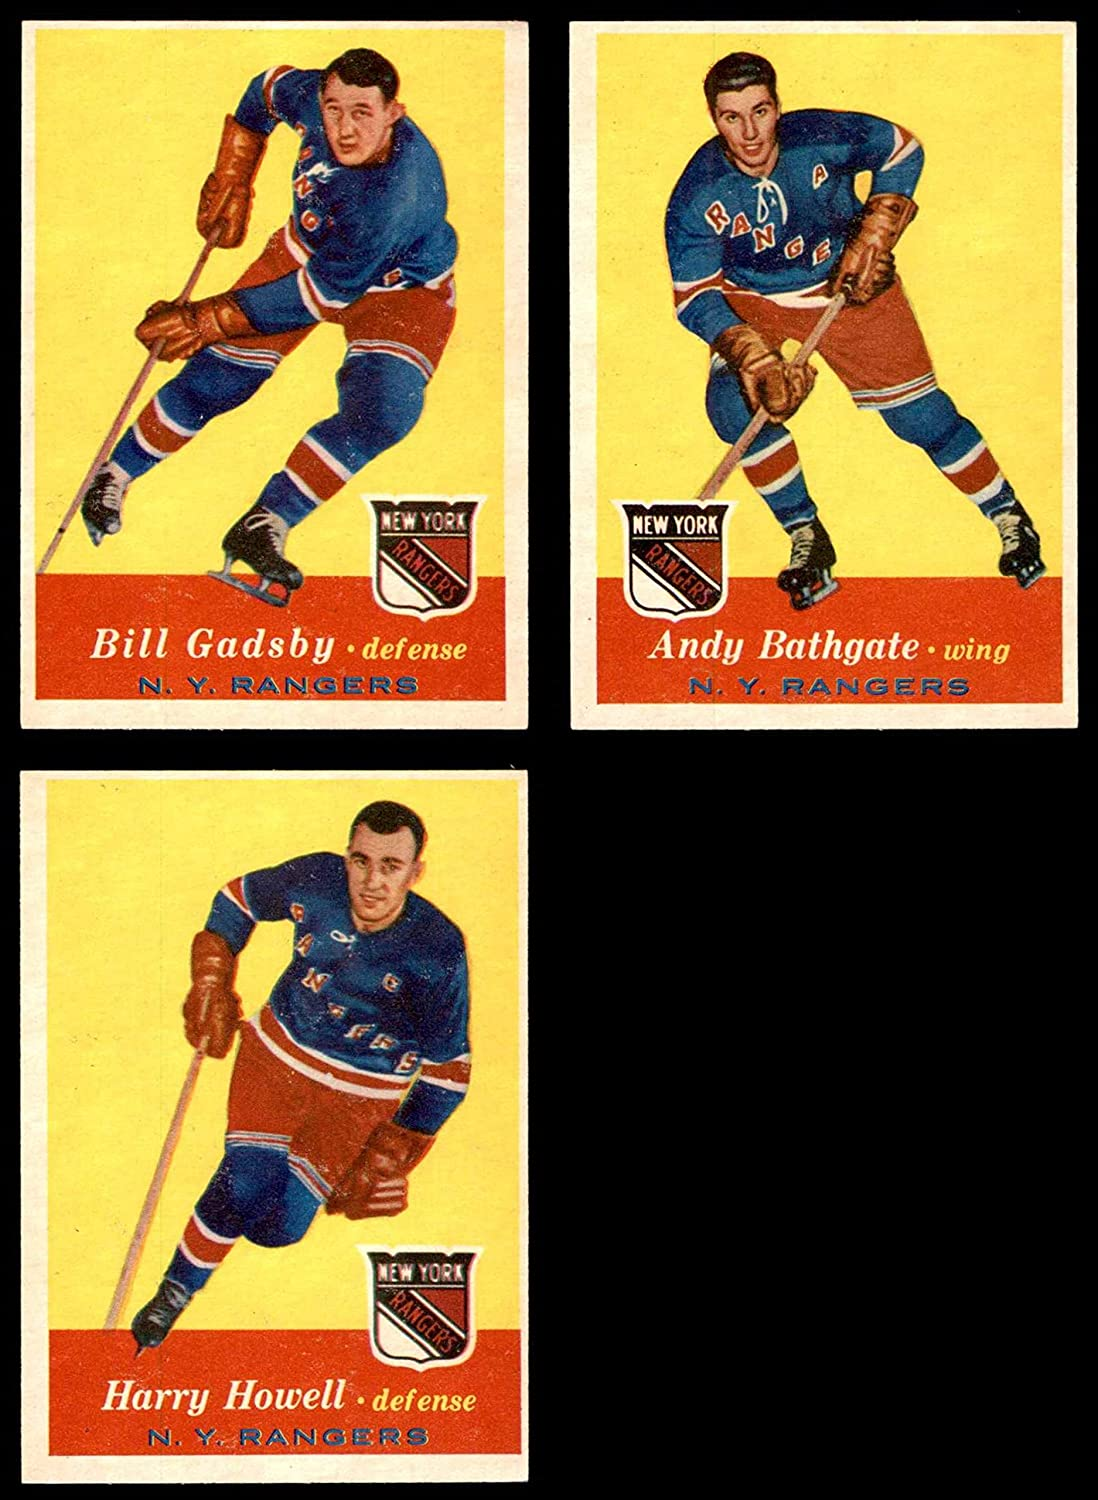 1957-58 Topps New York Rangers Near Team Set New York Rangers - Hockey (Baseball Set) Dean's Cards 6 - EX/MT Rangers - Hockey